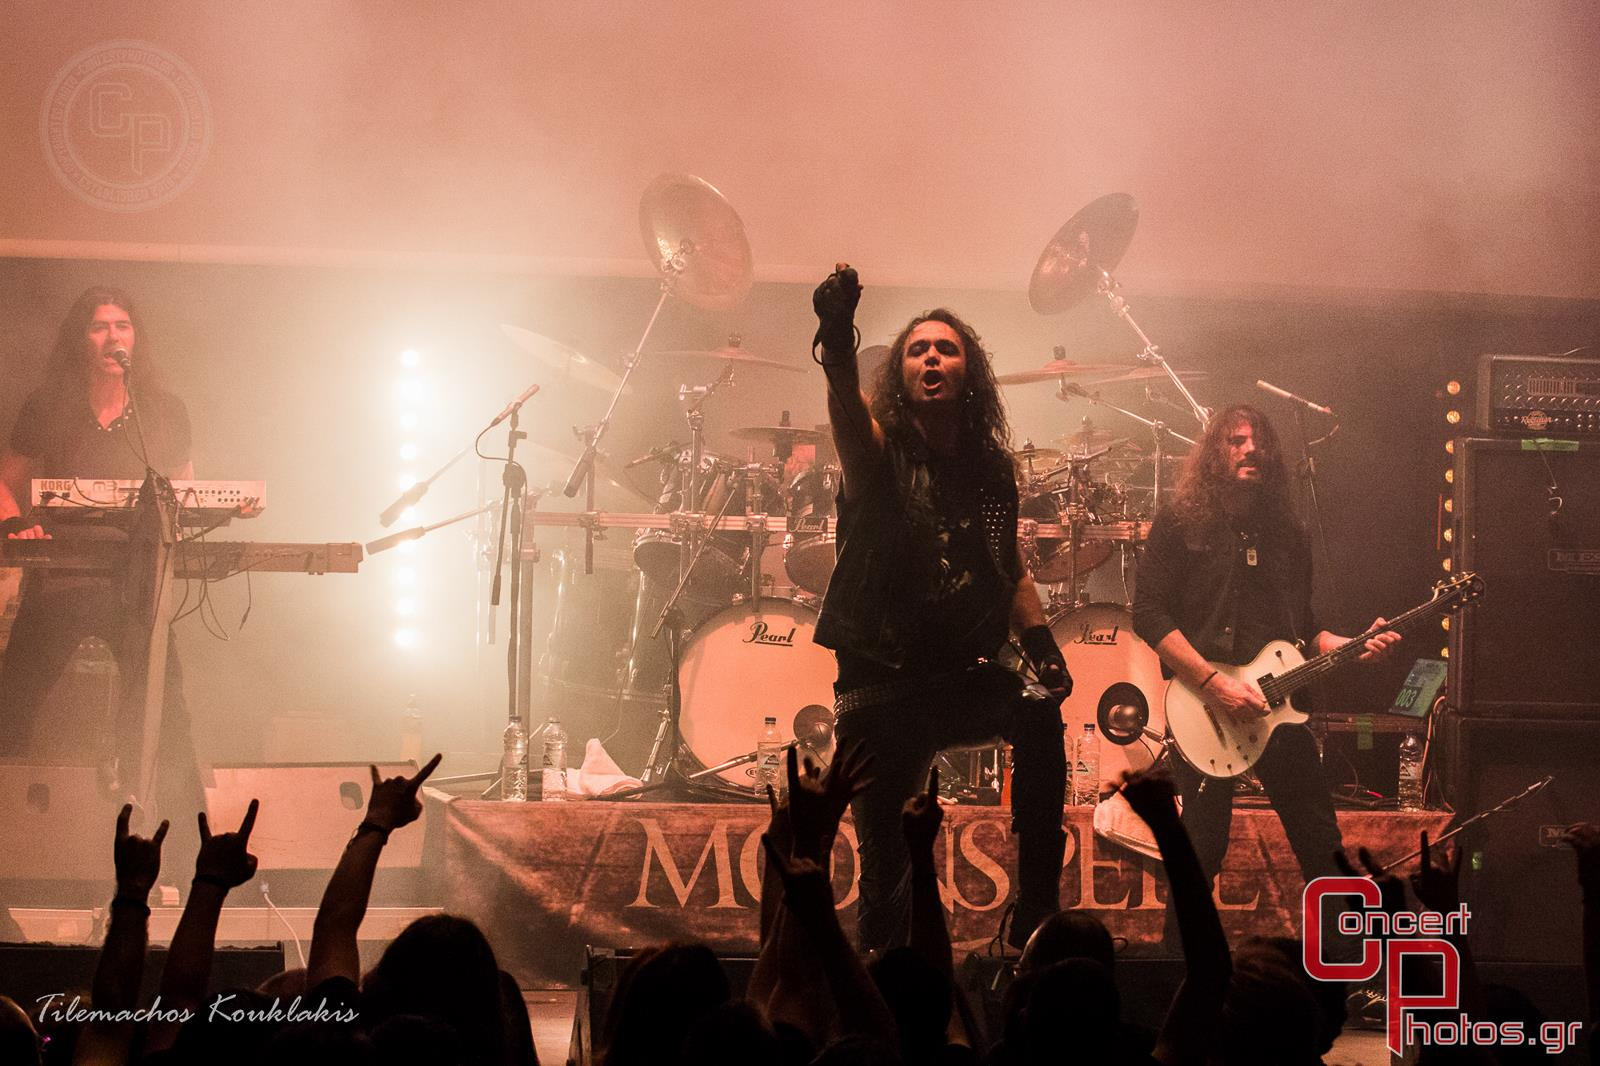 Moonspell-Moonspell photographer:  - IMG_6198